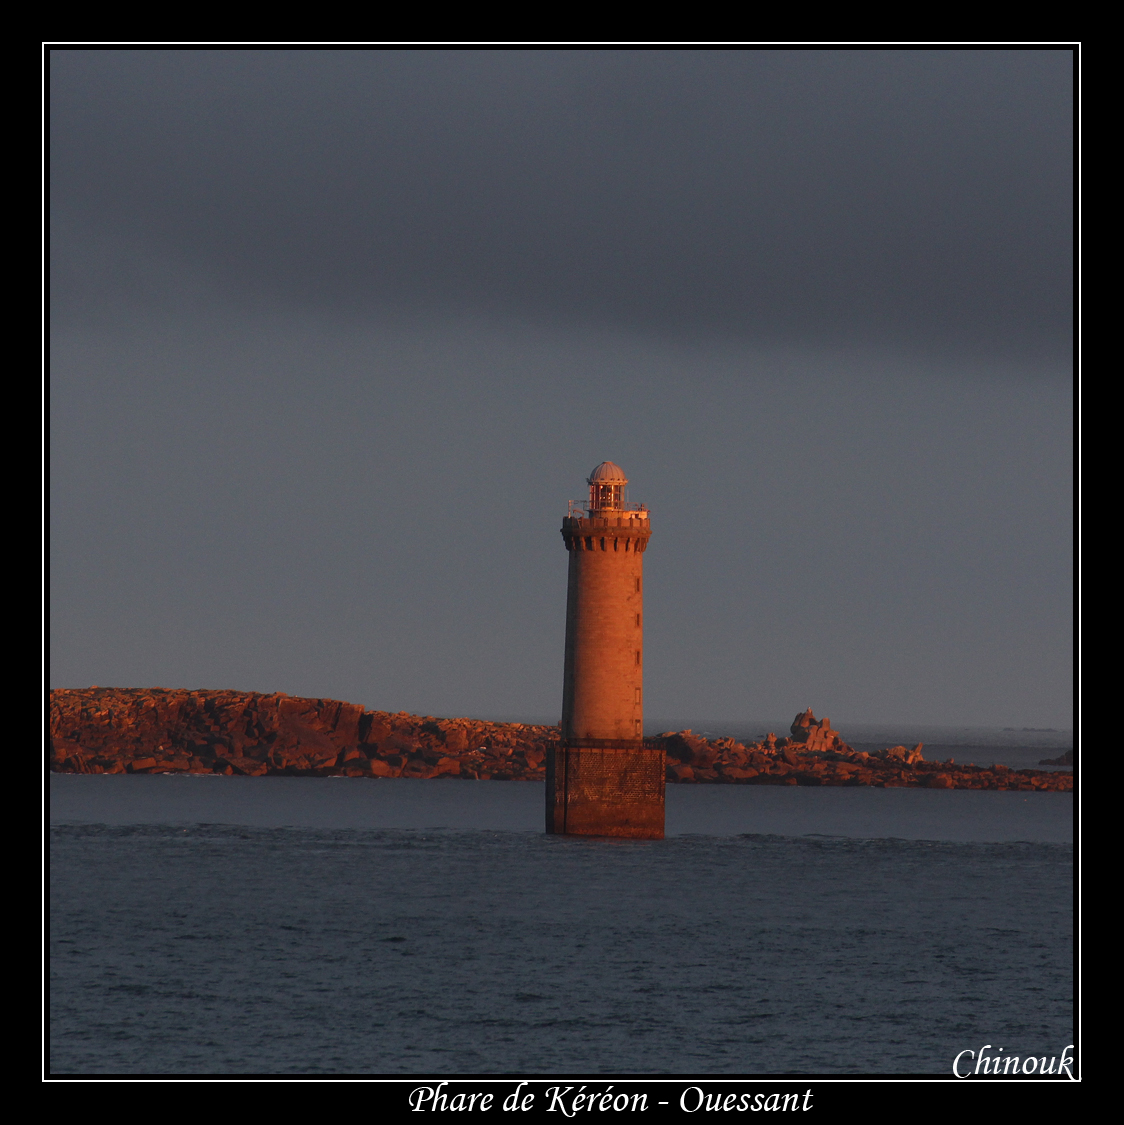 phare kereon ouessant